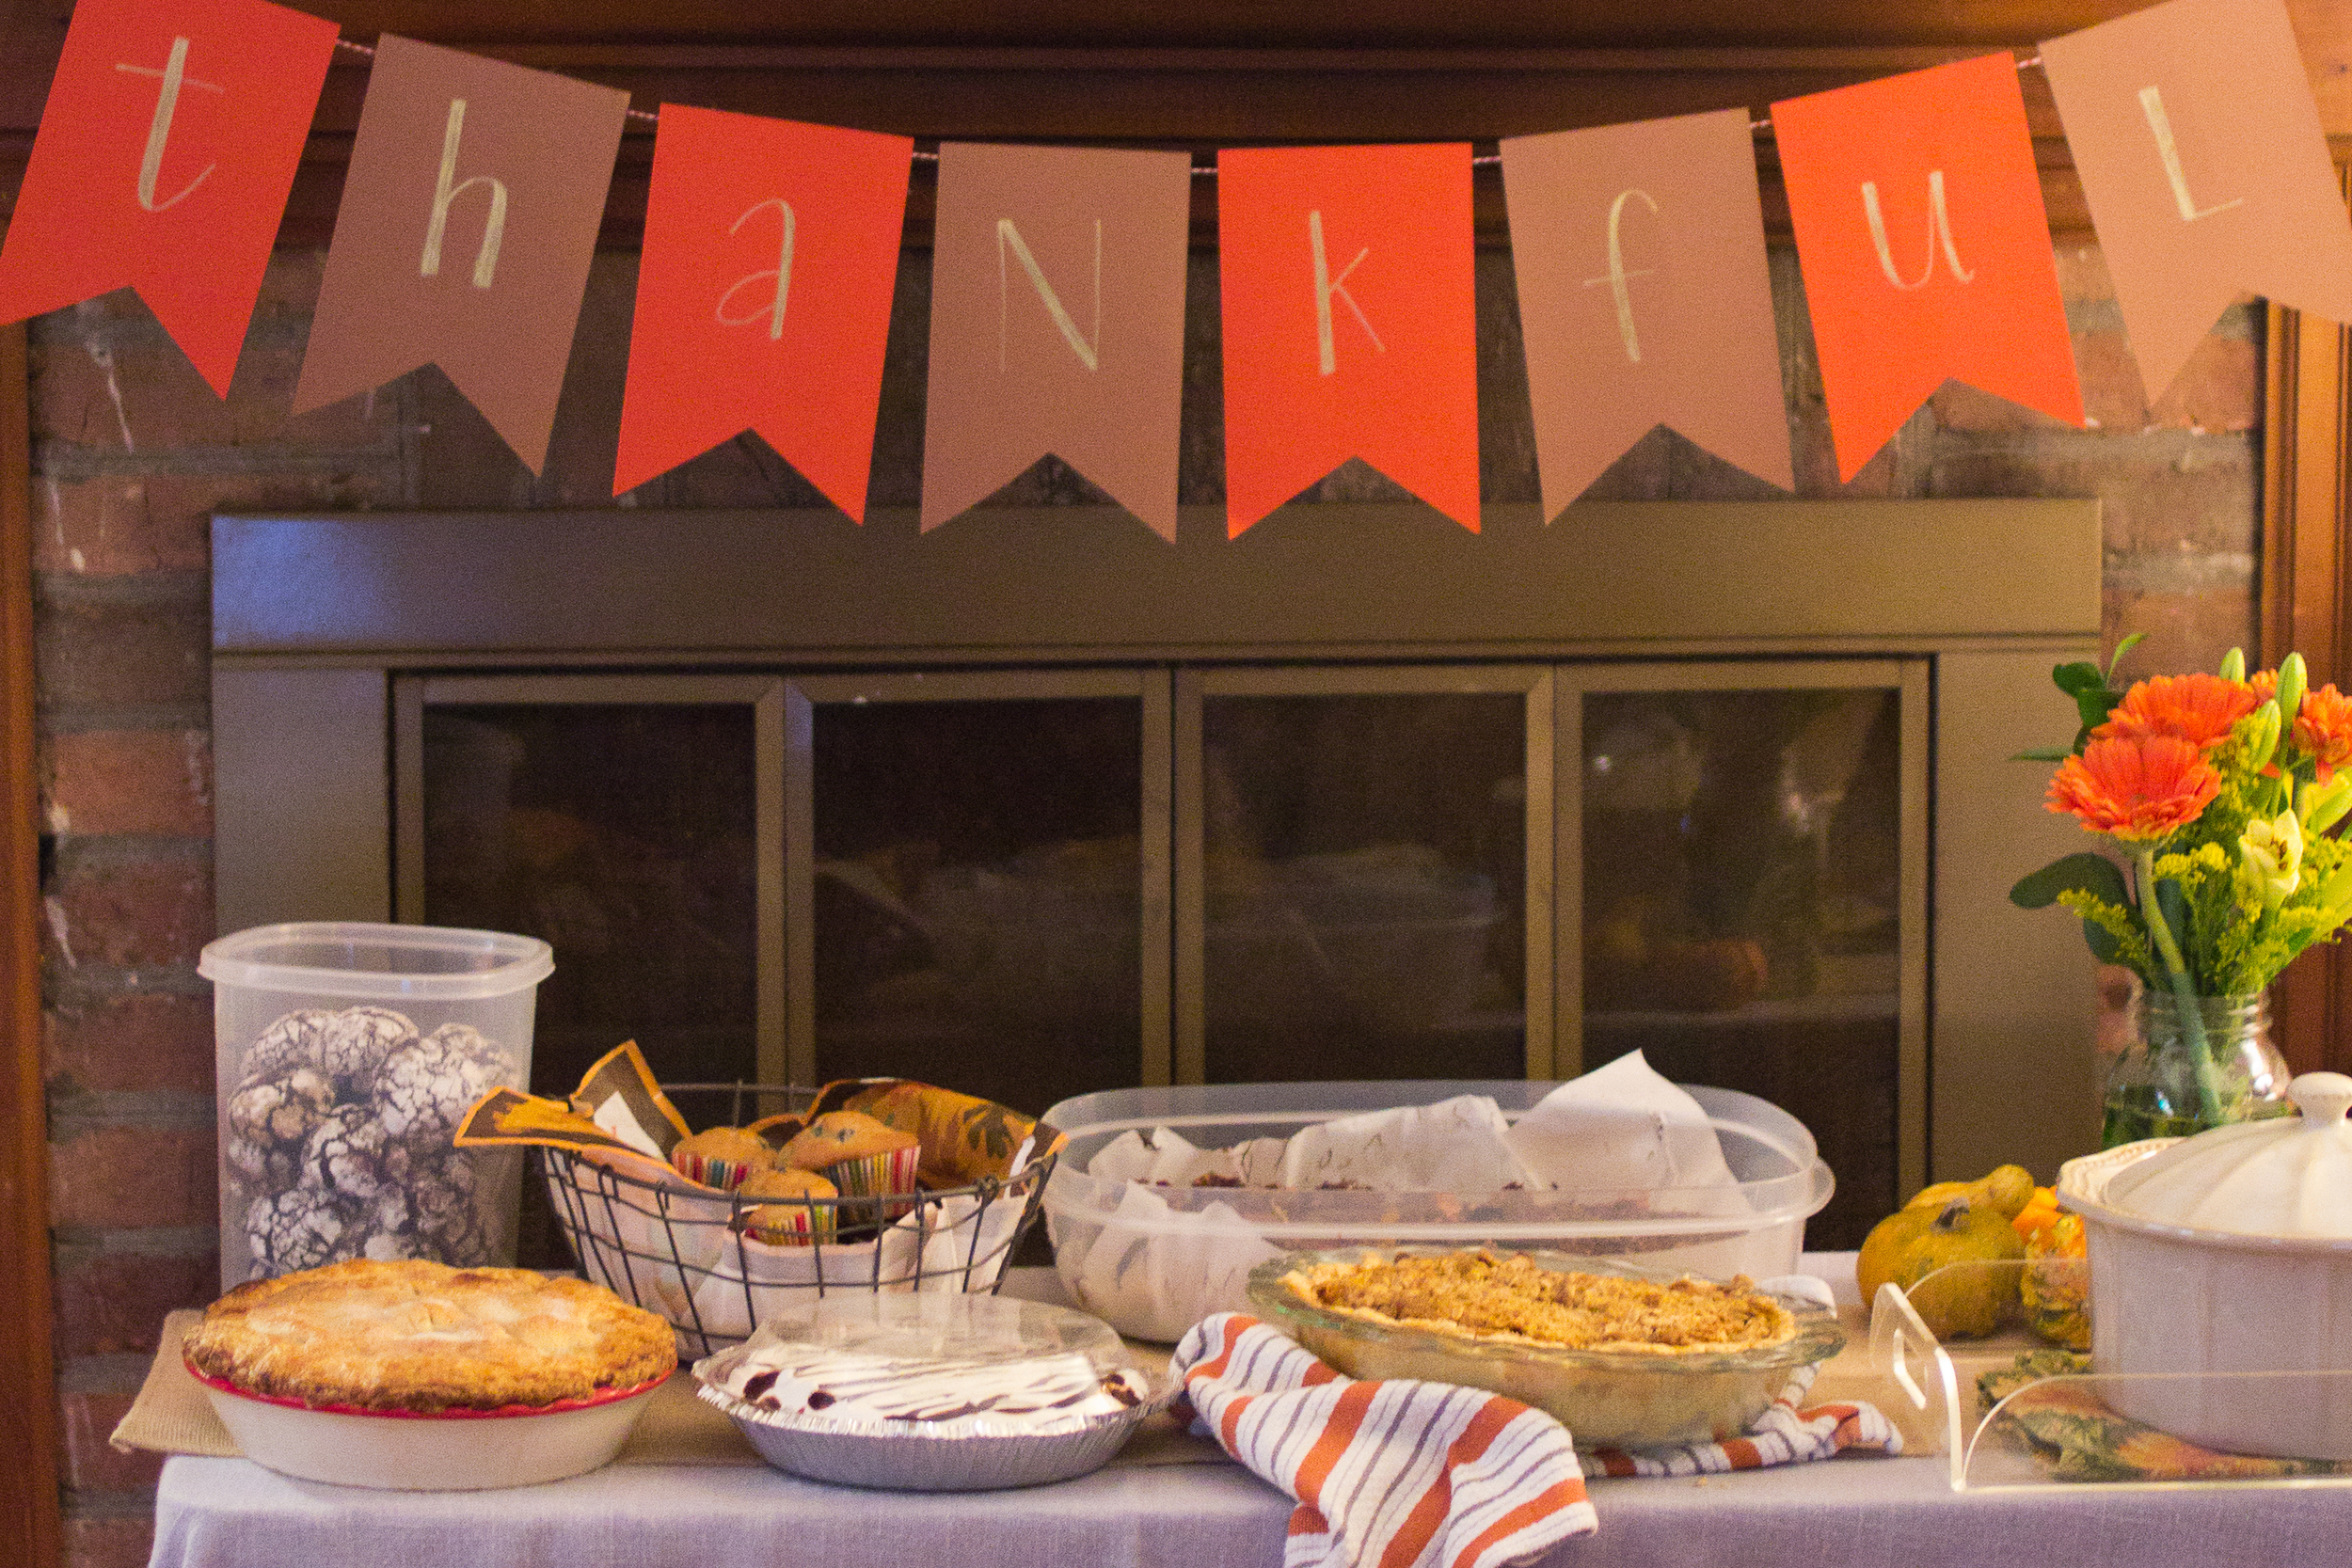 Friendsgiving Decorations from The Creative Swell